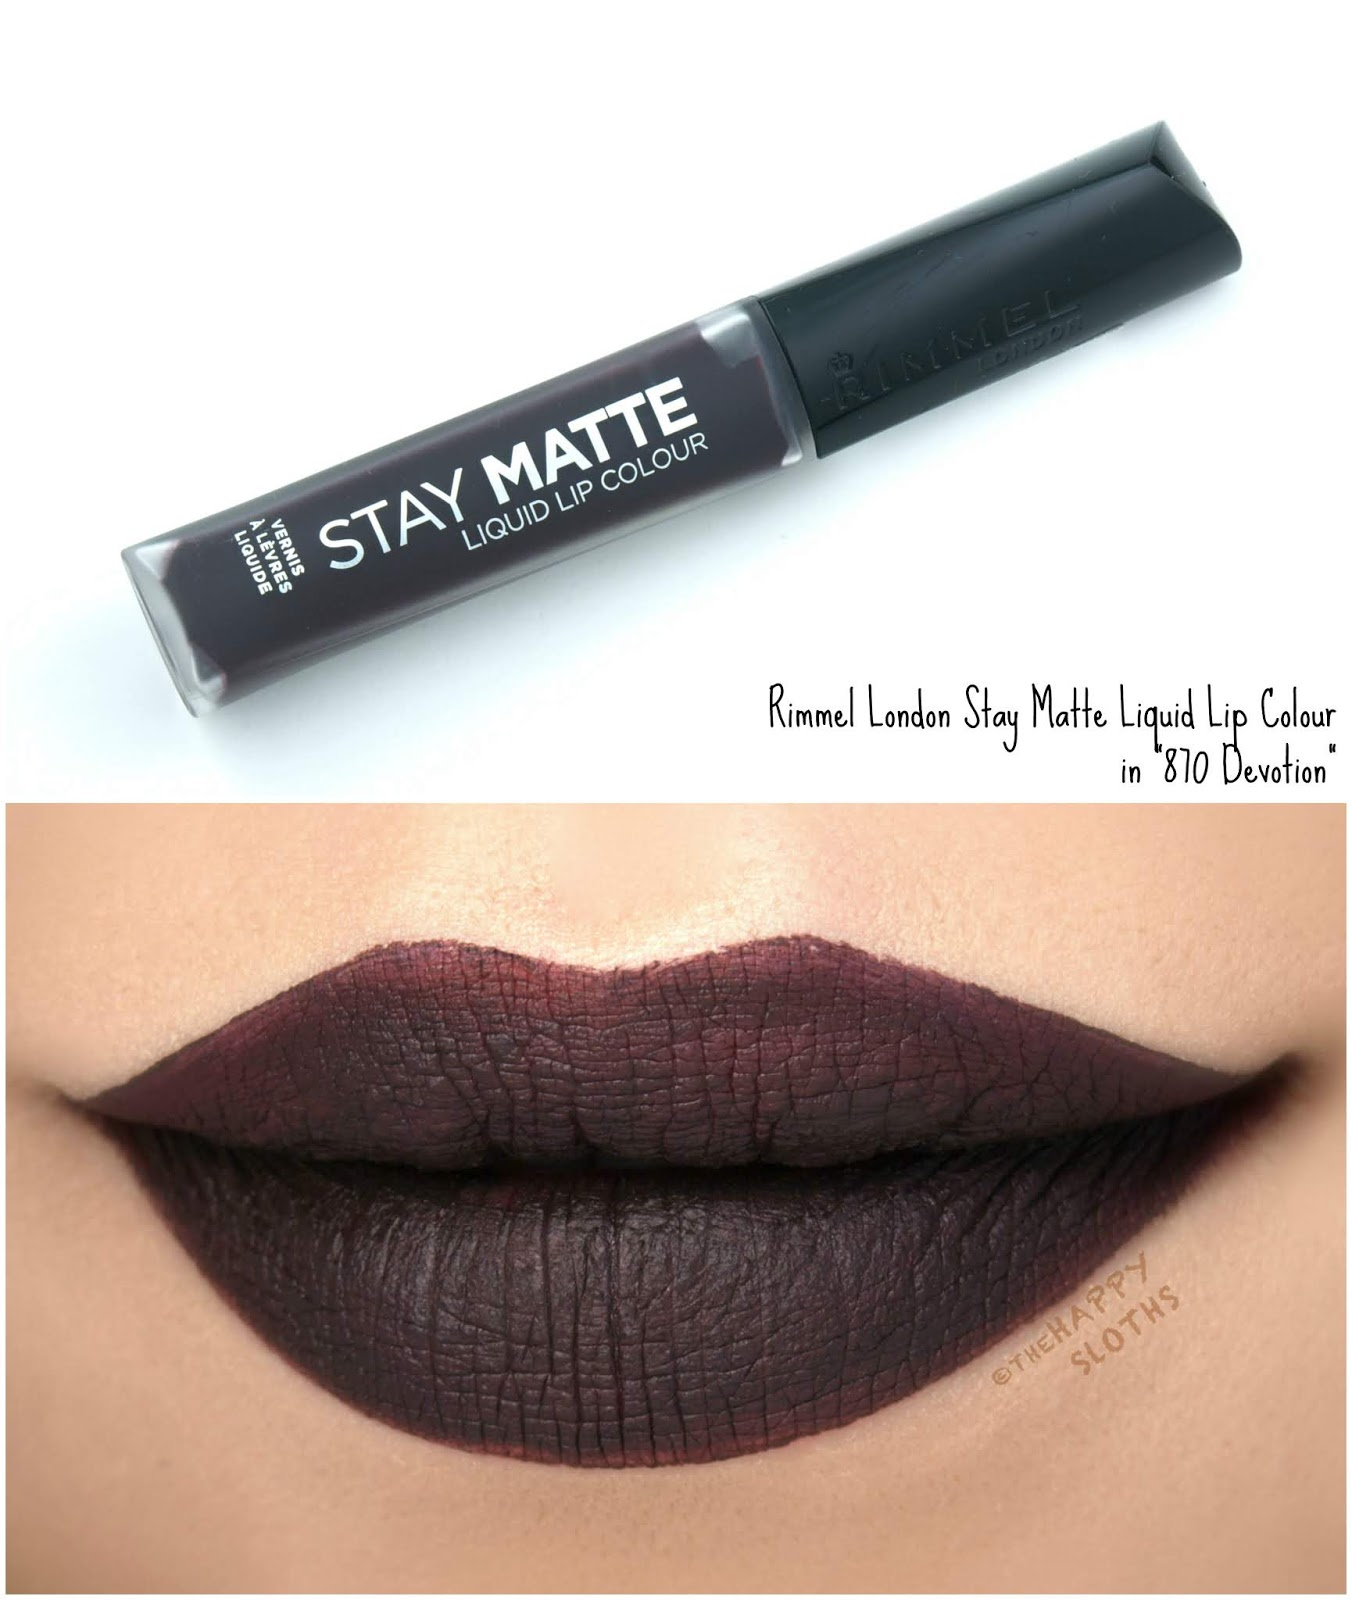 "Rimmel London | Stay Matte Liquid Lip Colour in ""870 Devotion"": Review and Swatches"